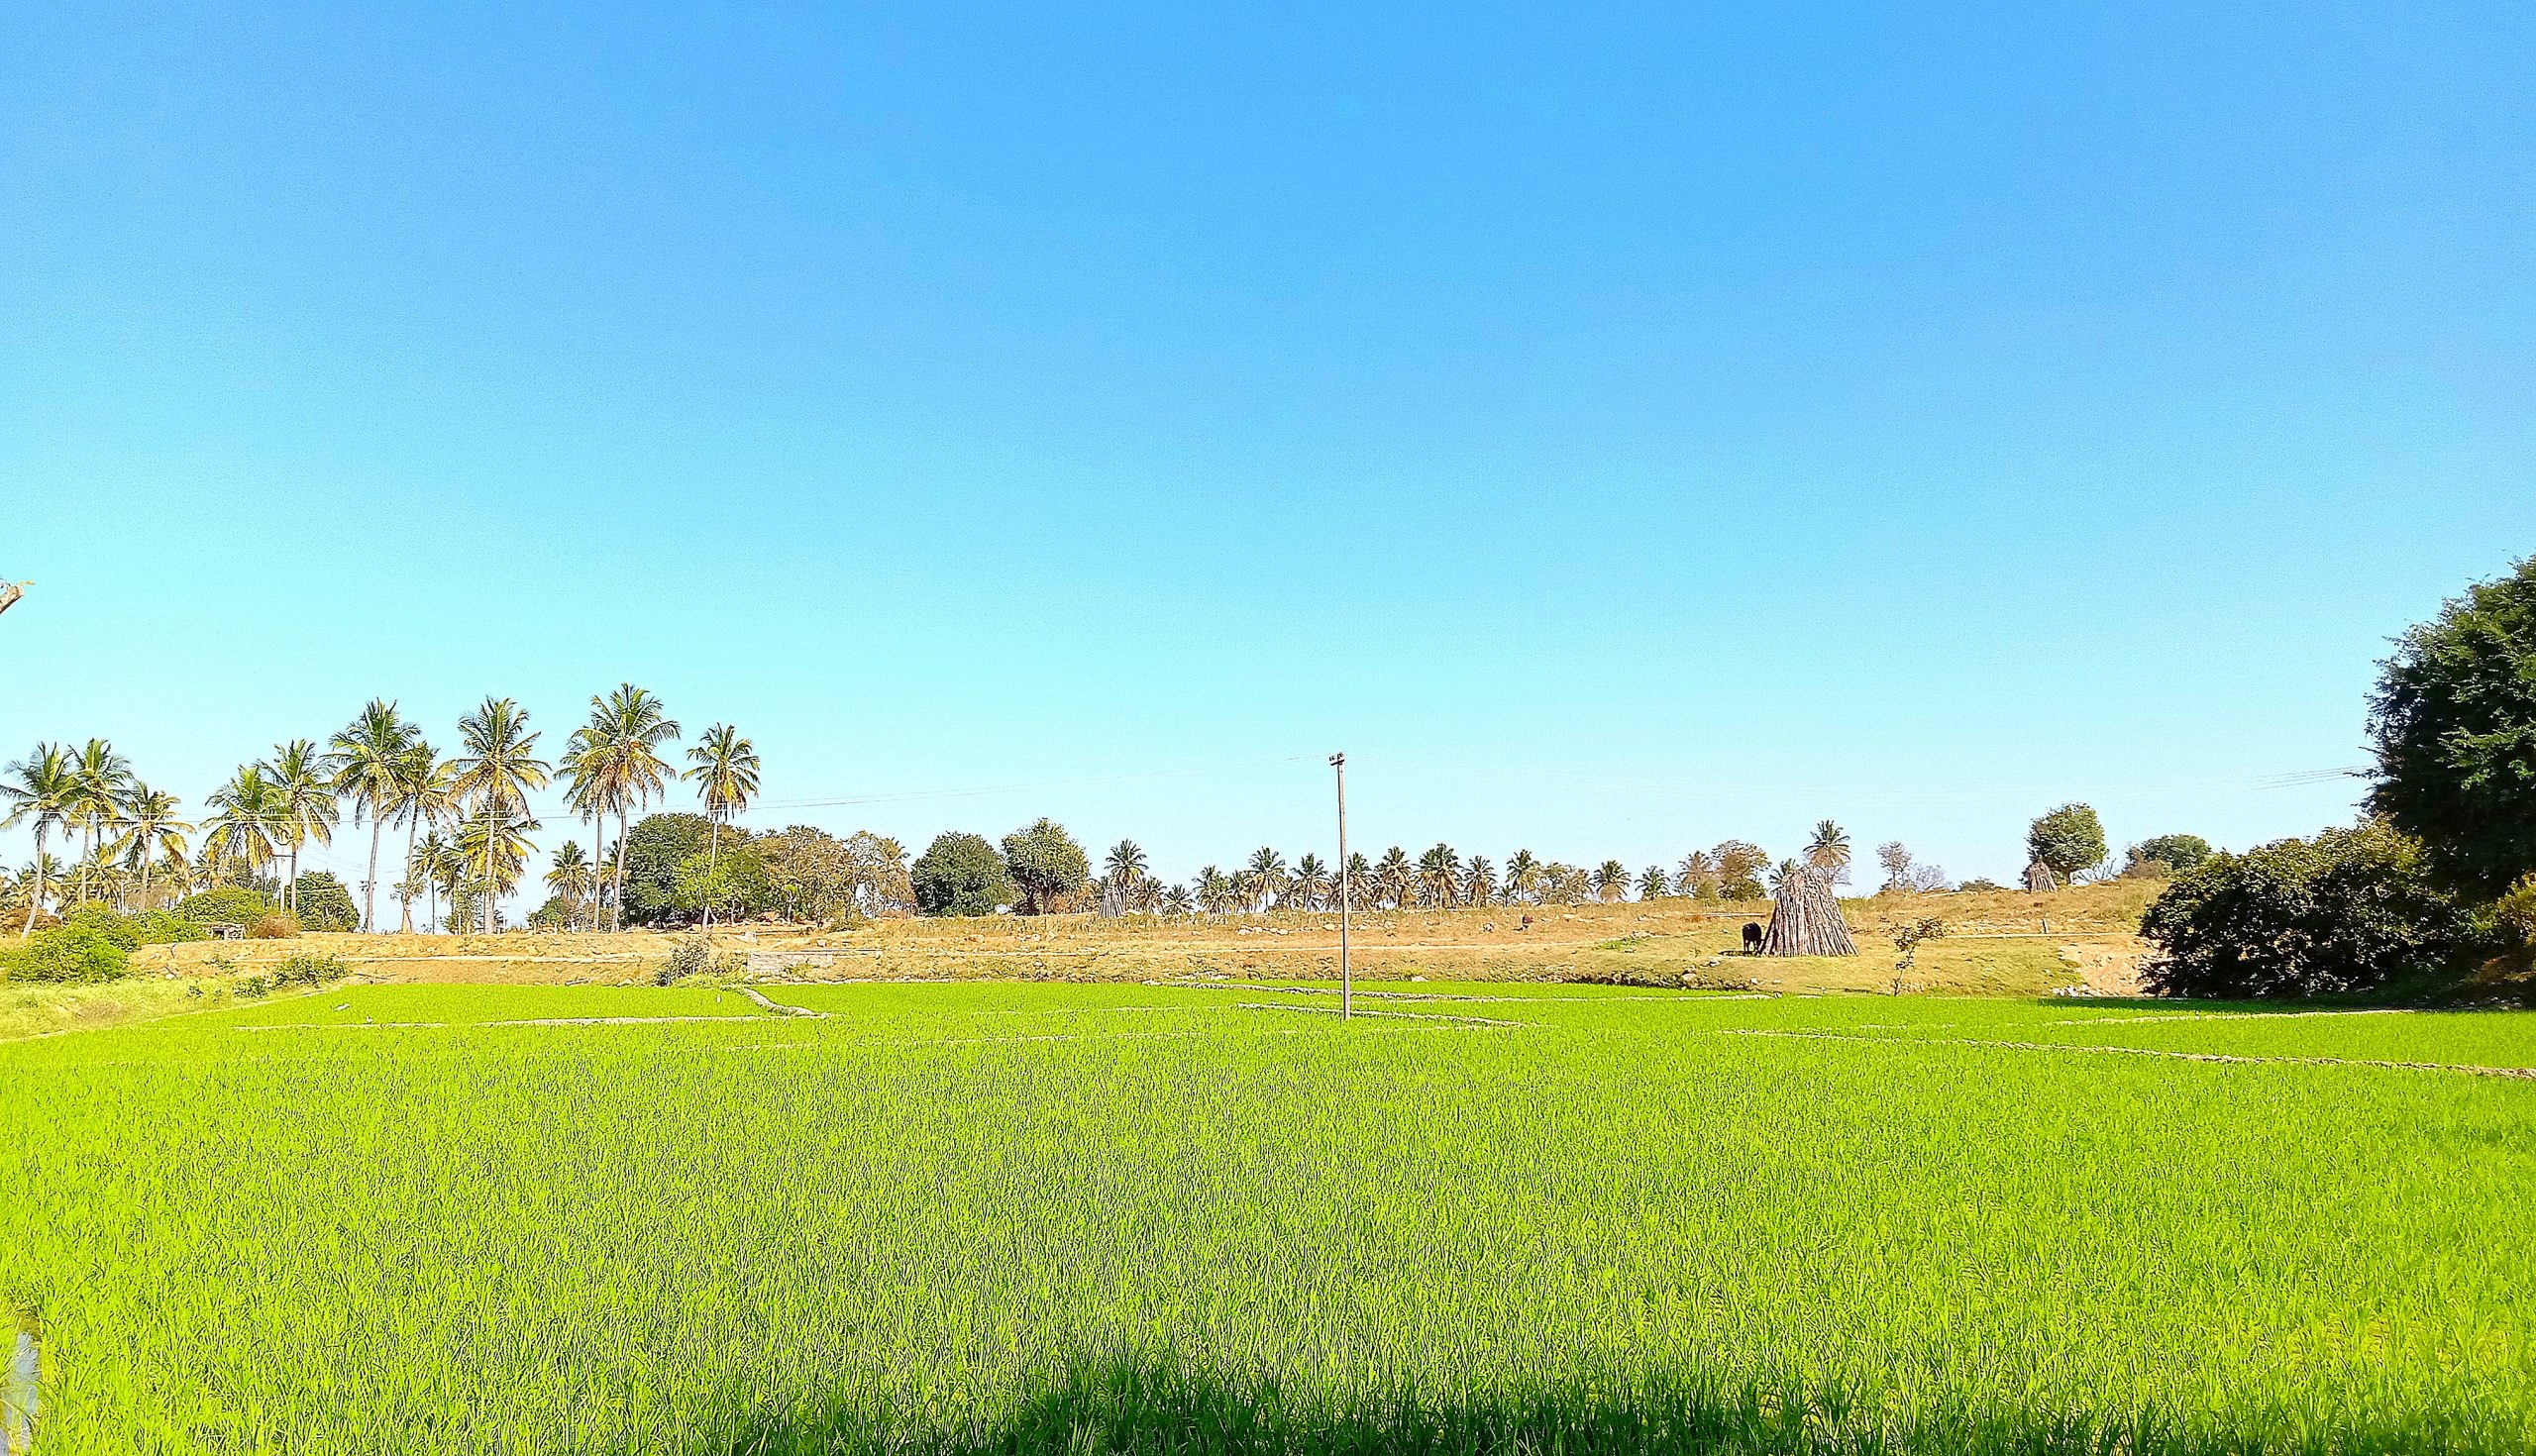 Greenery of agriculture land